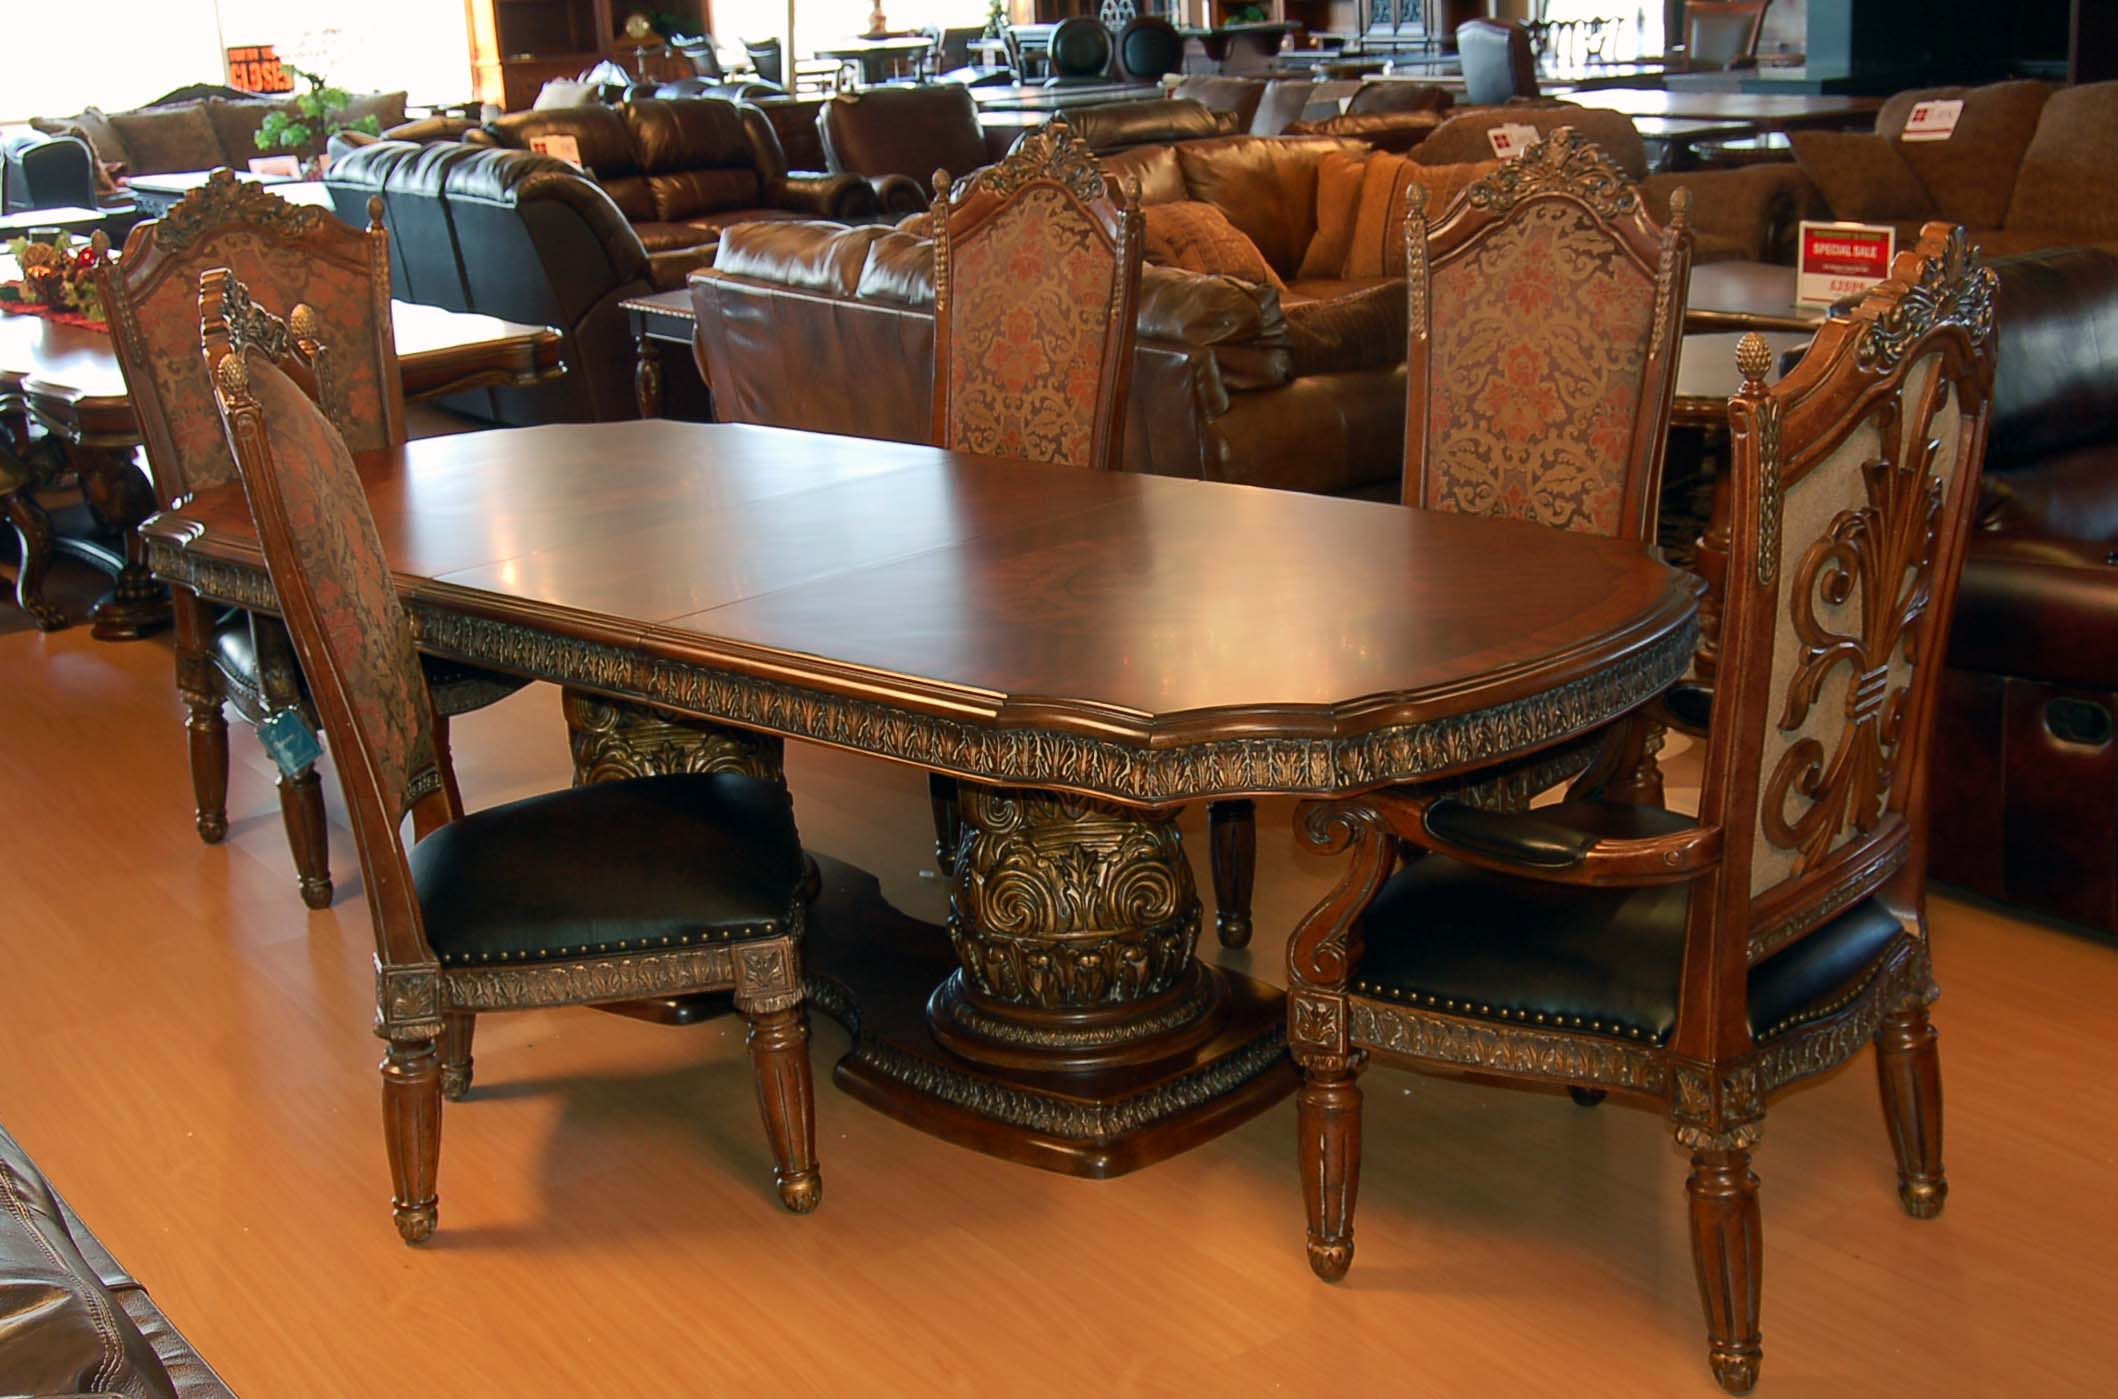 Dining Room Table With Chairs 11 Piece Ornate Carved Dining Table Chair Sideboard And